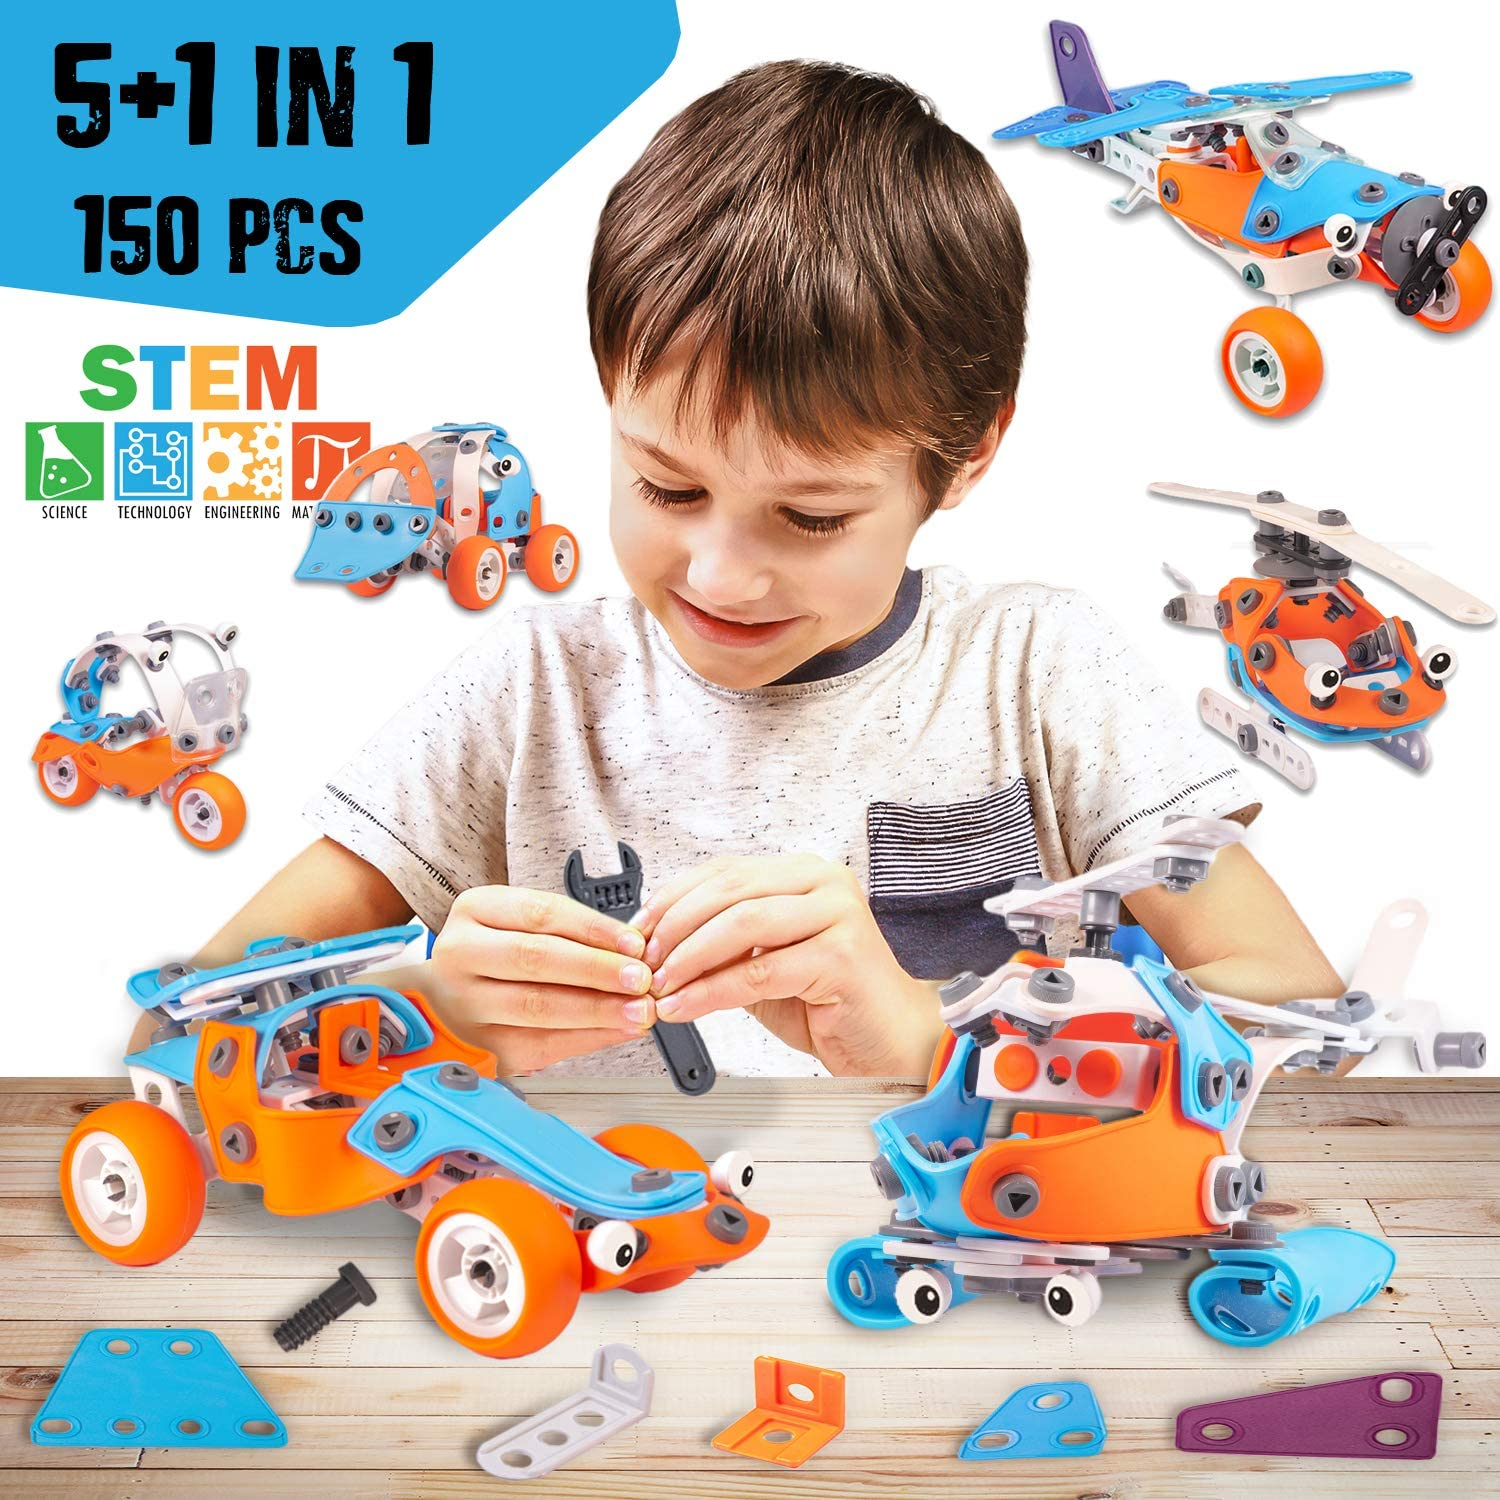 5+1in1 Education Learning Gift Best Building Set 6 7 8 9 10+ Yr Old boy Gifts 150 PCS Boys Toys Age 6-12 Build and Play Educational Engineering /& DIY Construction Kit STEM Building Toys for Boys